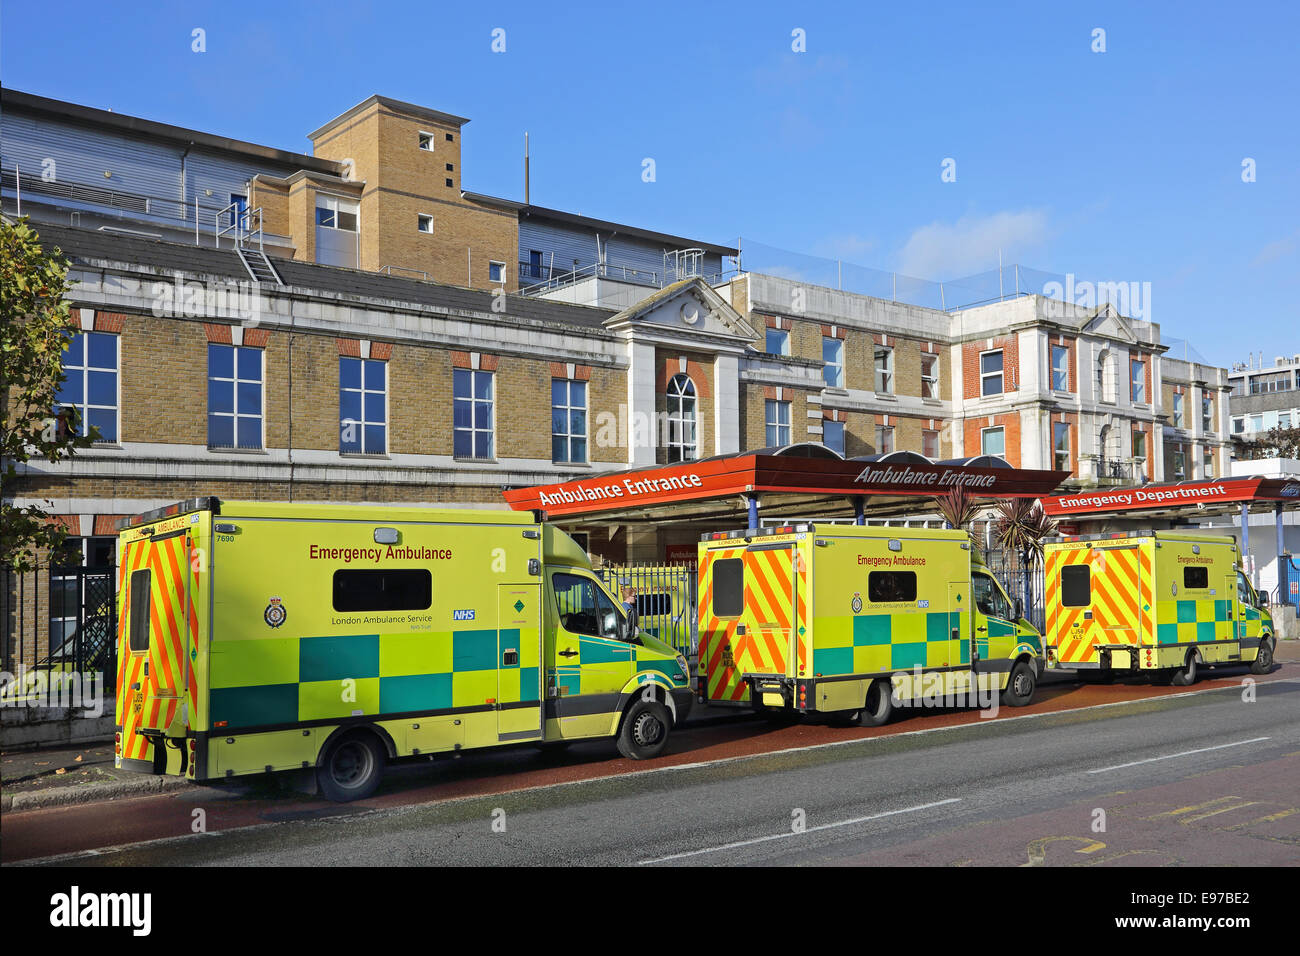 Ambulances lined up outside London's Kings College Hospital Accident and Emergency department on Denmark Hill. - Stock Image